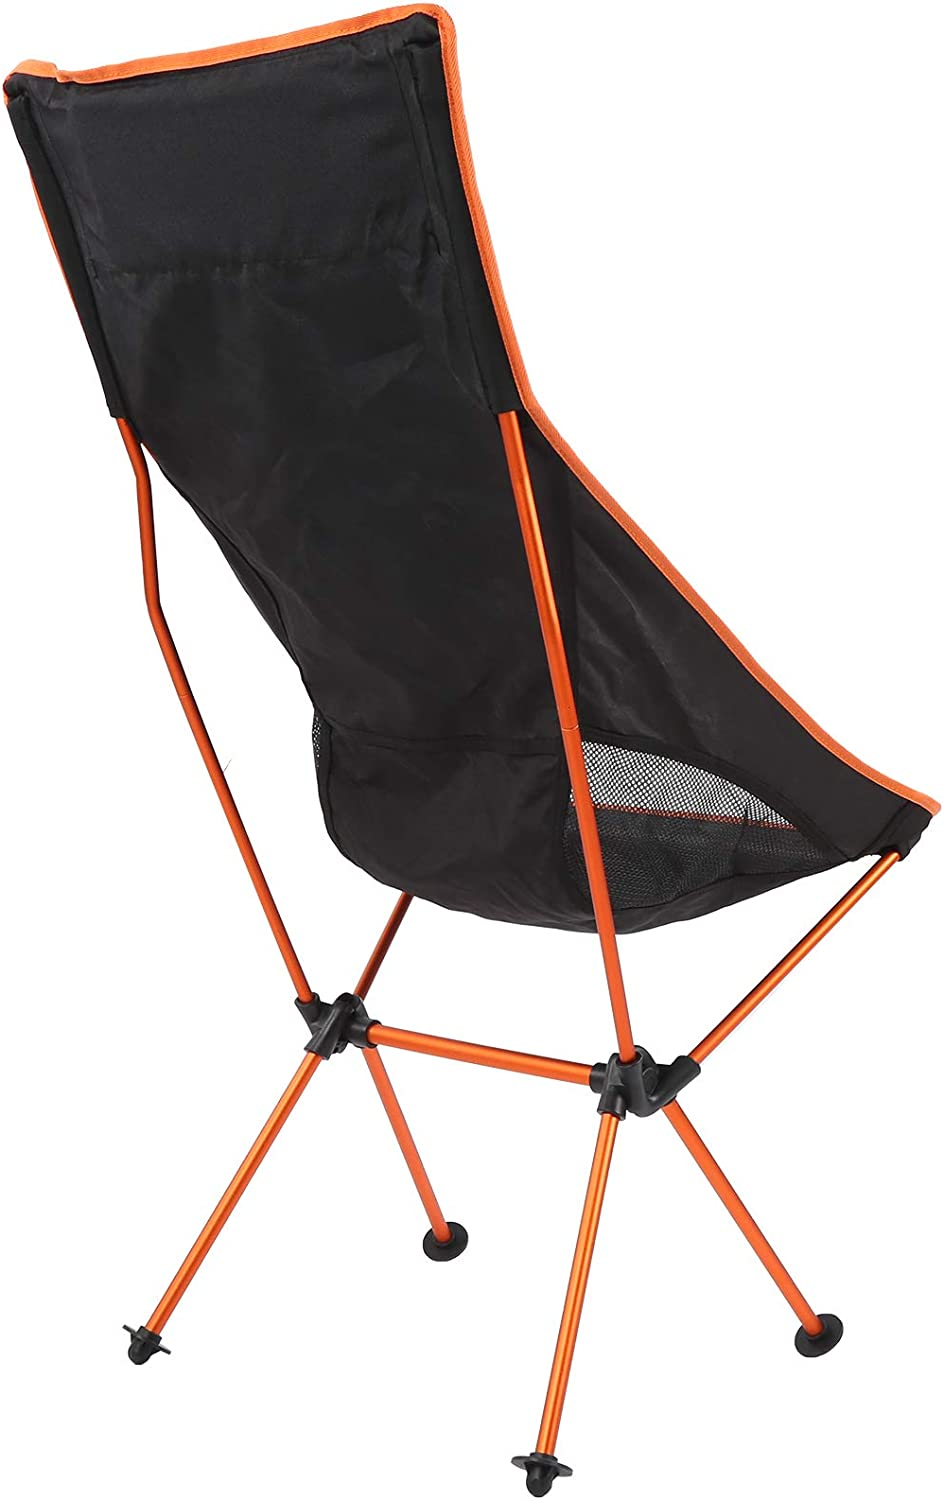 Tampa Mall AOER Picnic quality assurance Lounge Fishing Chair Indoor Ergonomic Design Us for